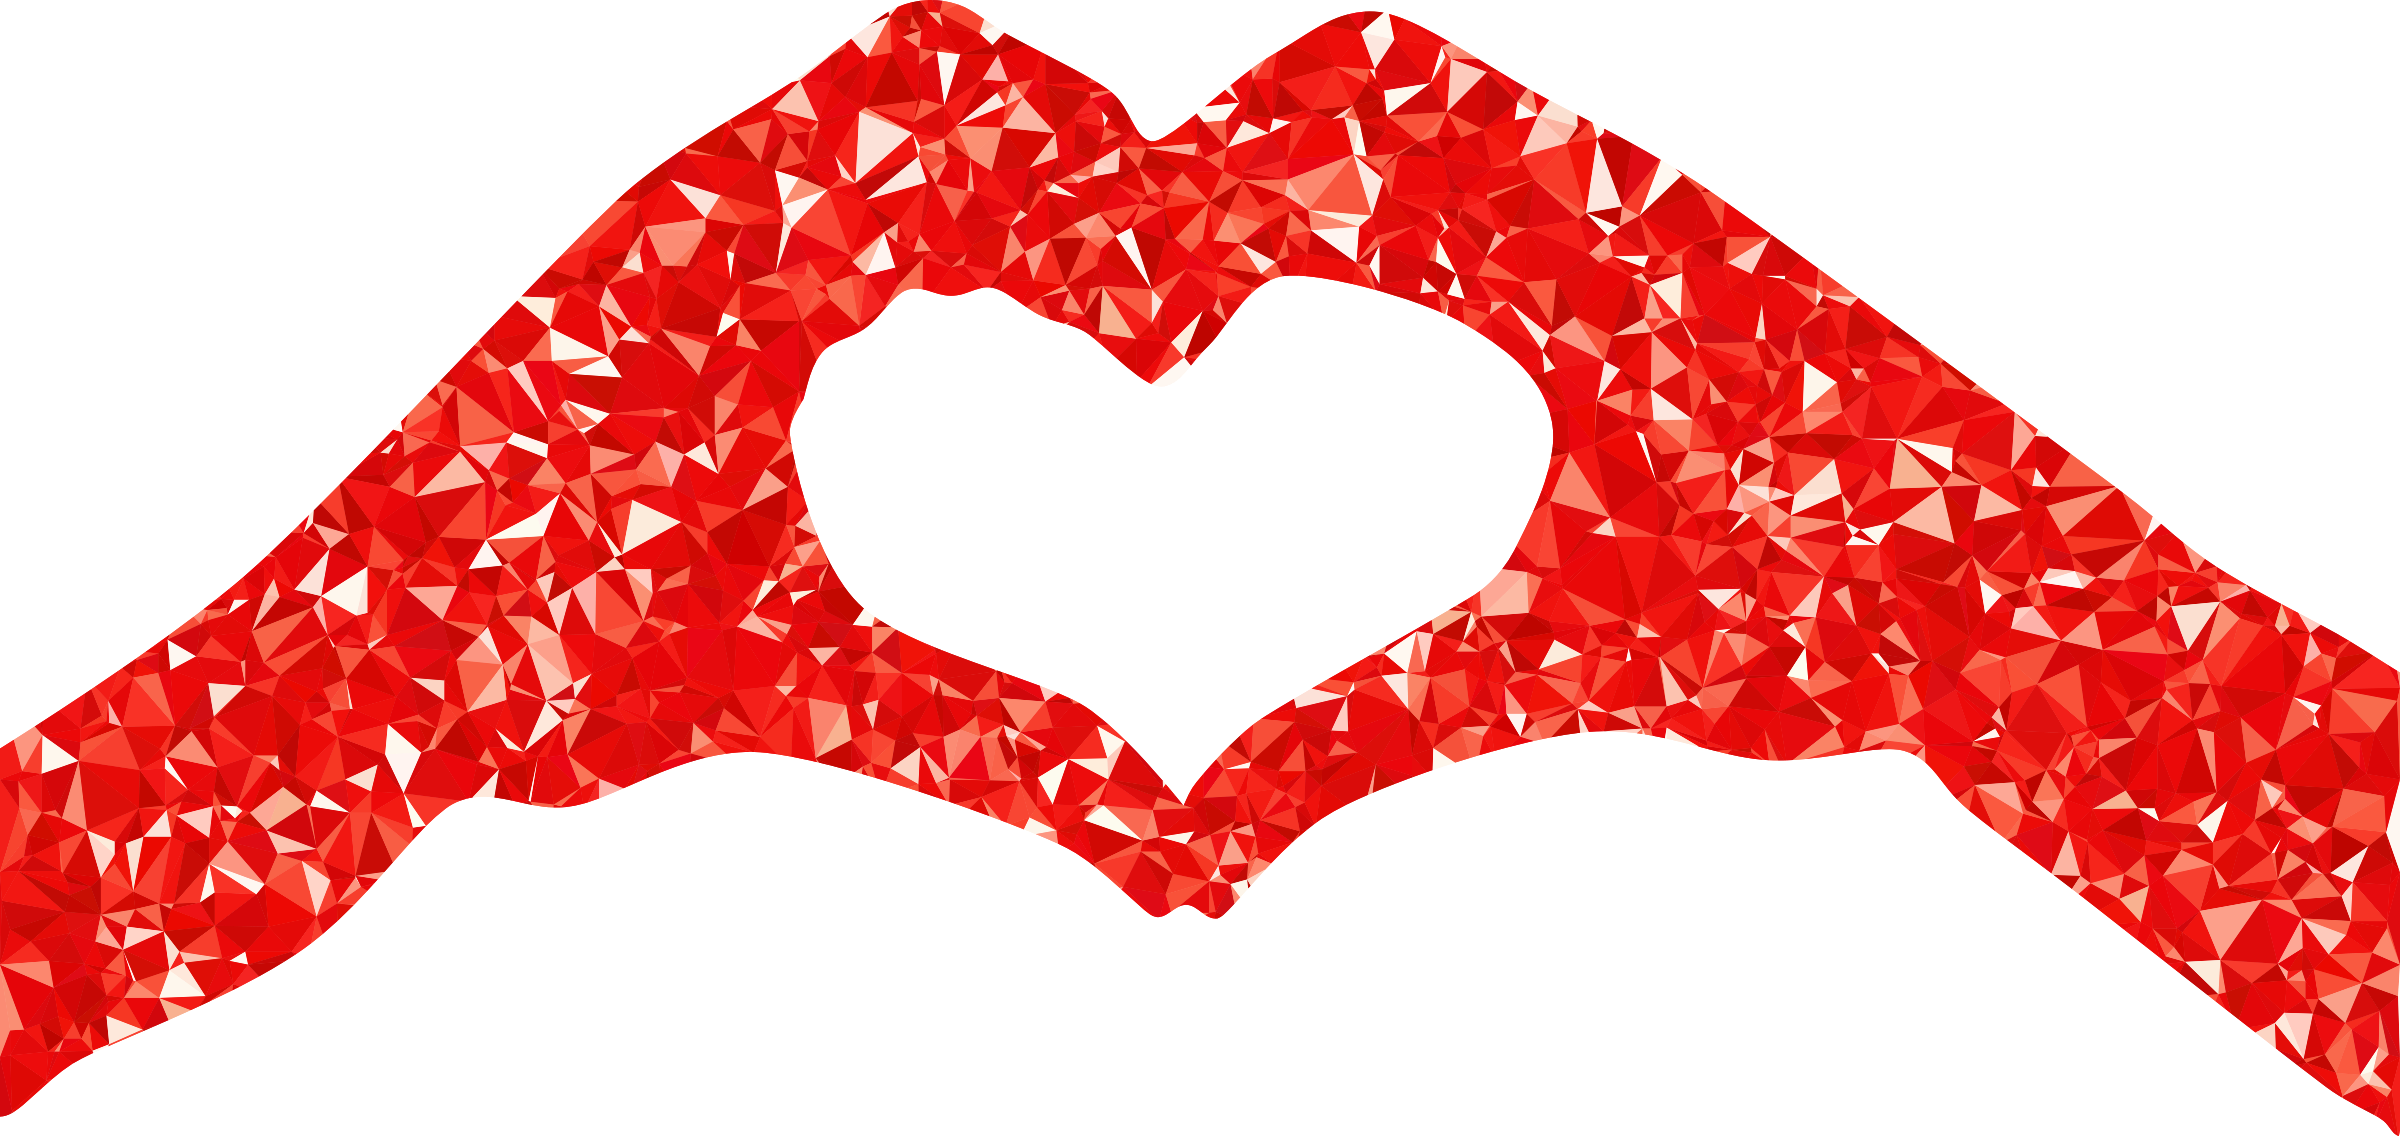 Heart hands png. Ruby silhouette icons free